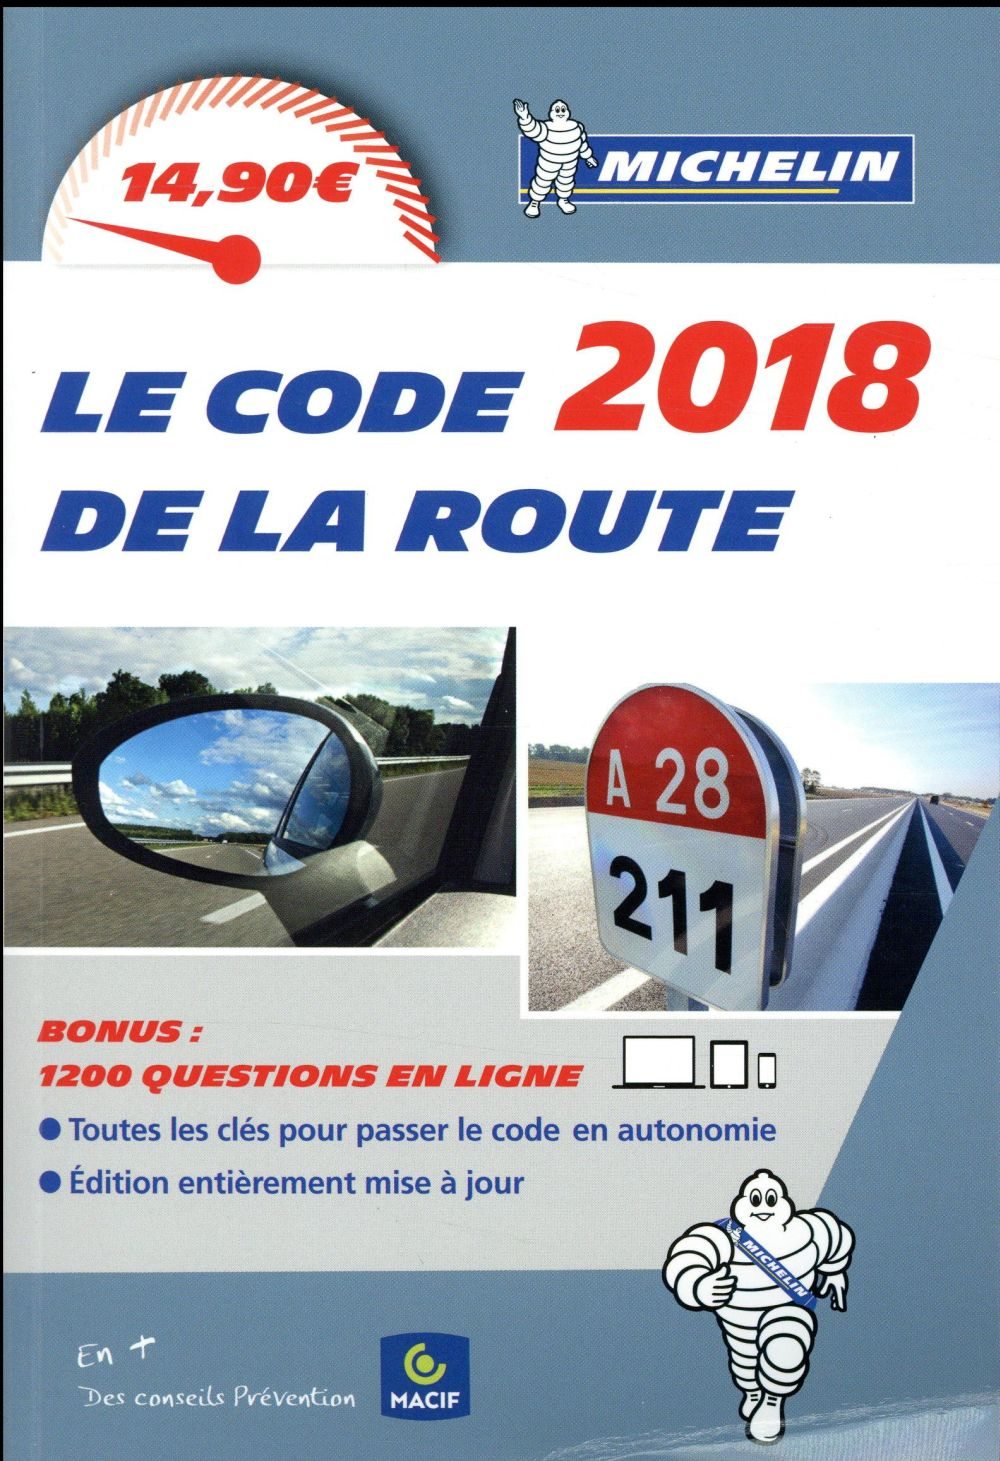 CODE DE LA ROUTE MICHELIN 2018